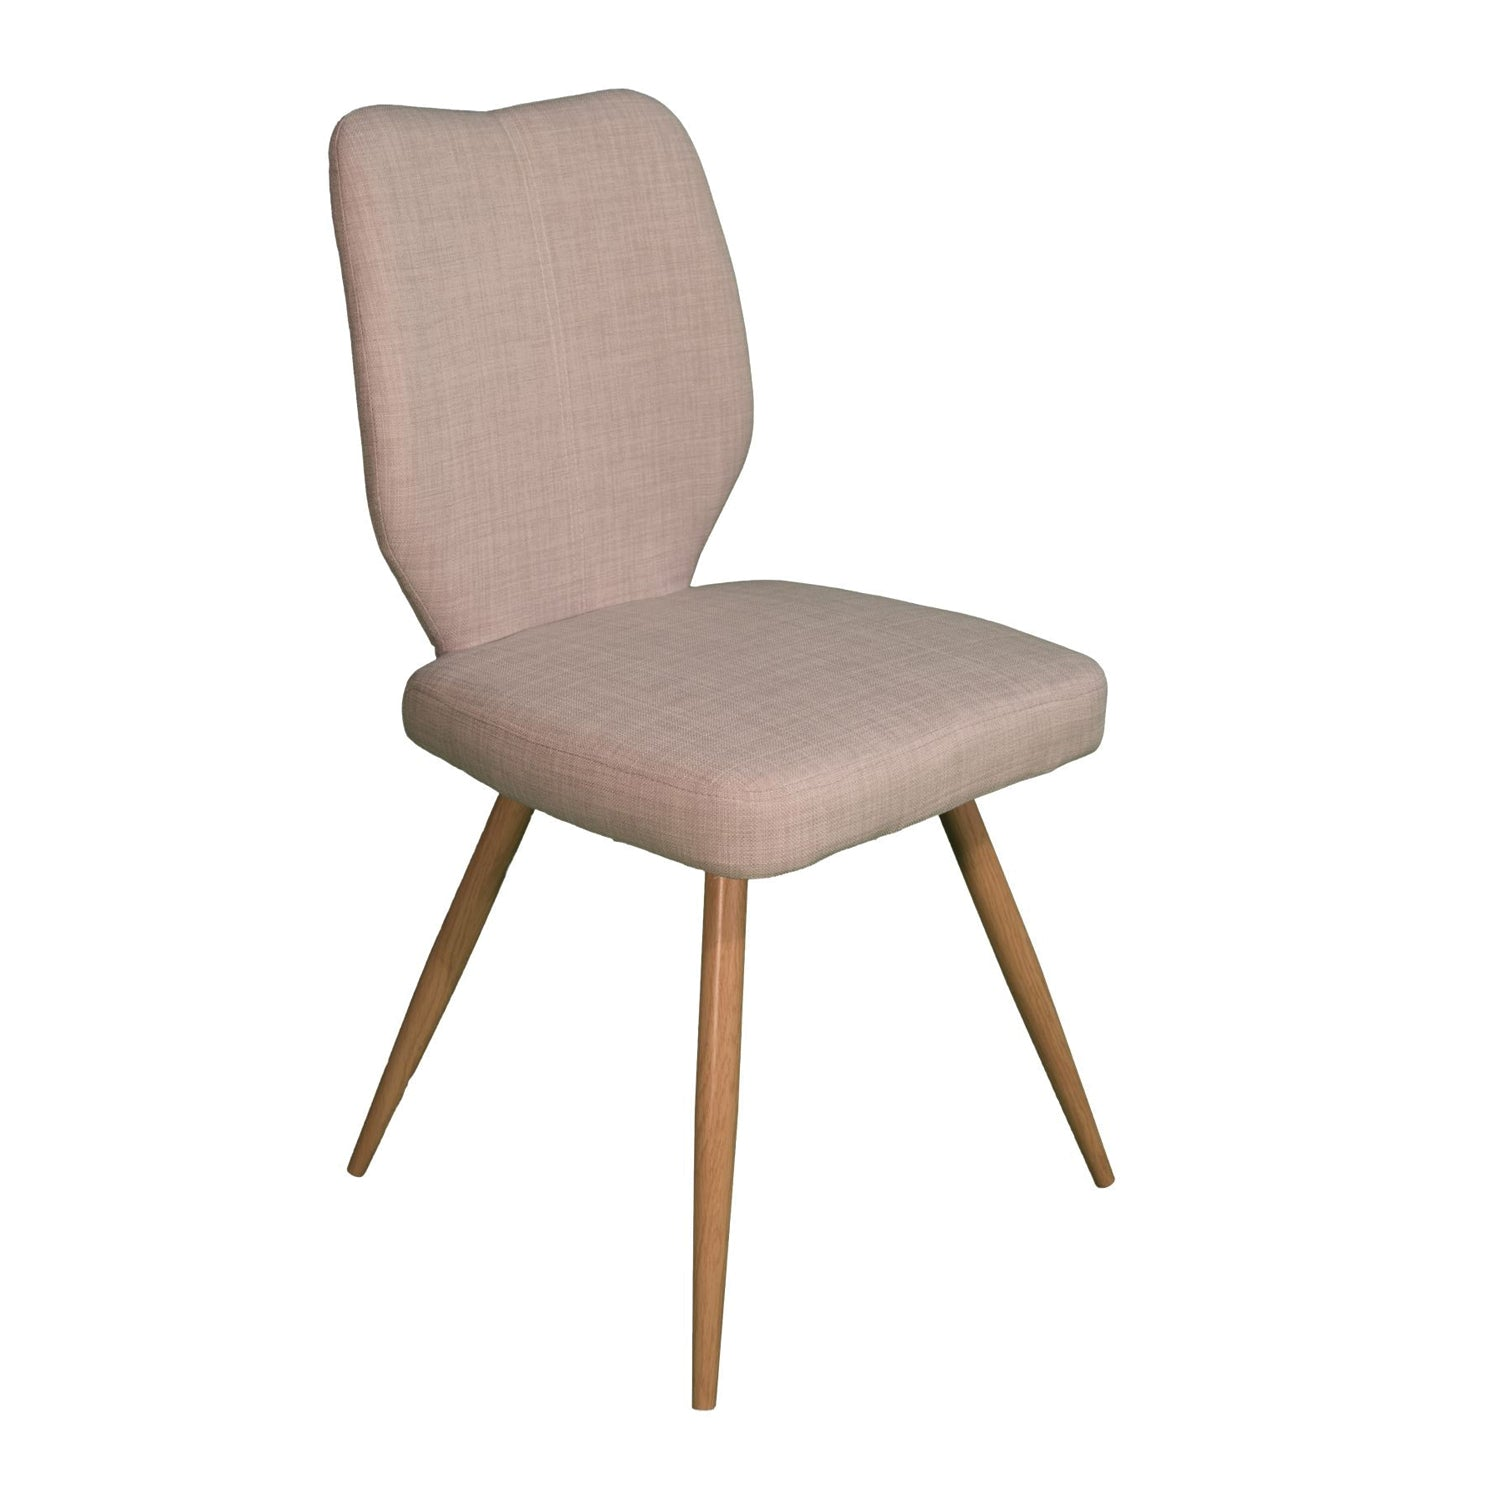 Herne Hill Geo Dining Chair - Ivory